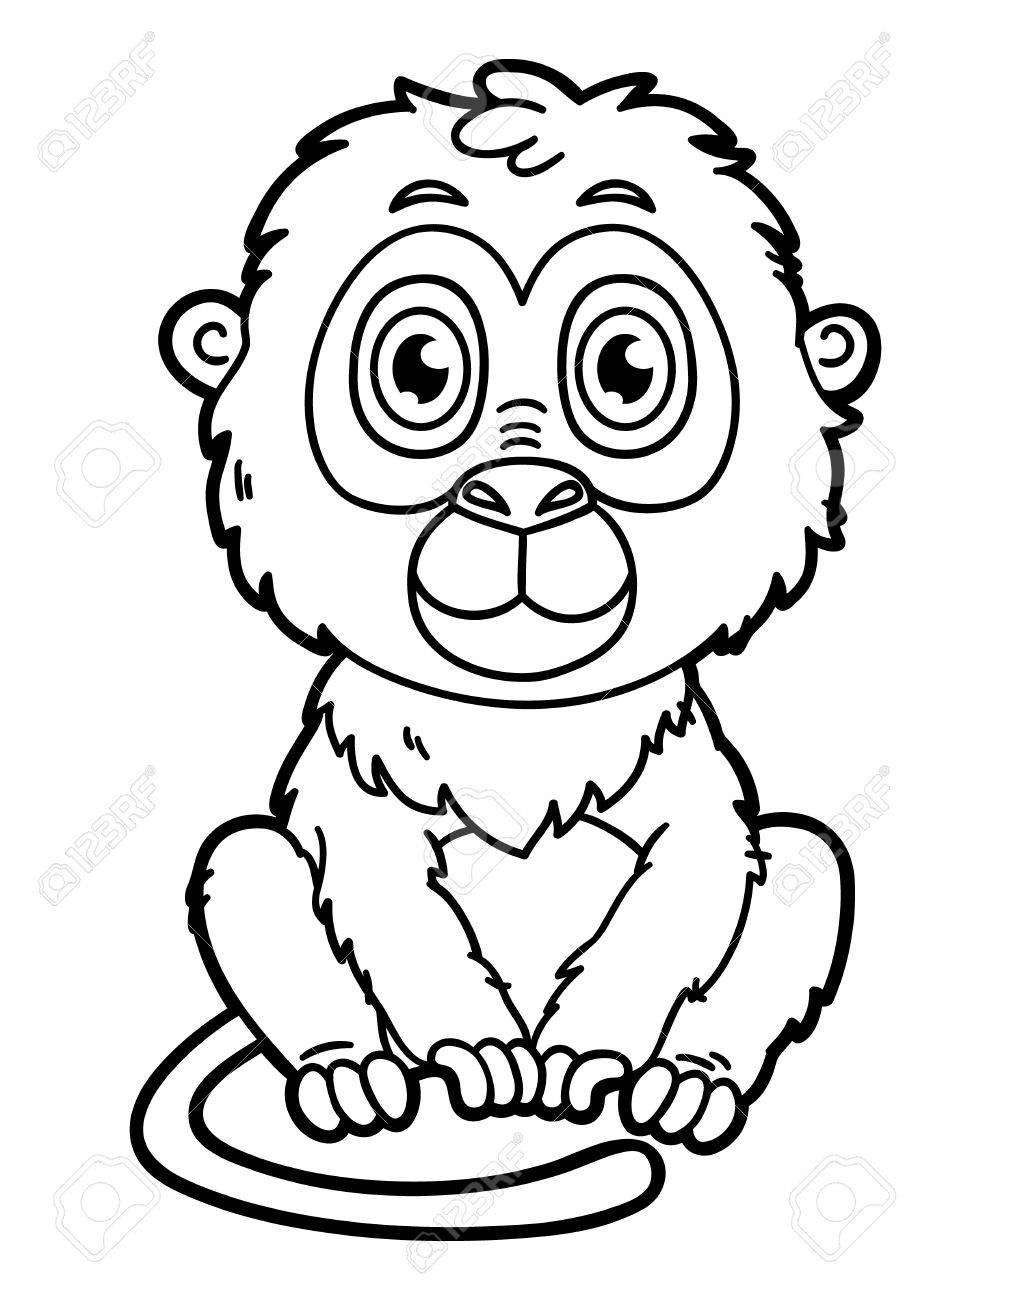 funny monkey vector illustration coloring page of happy cartoon